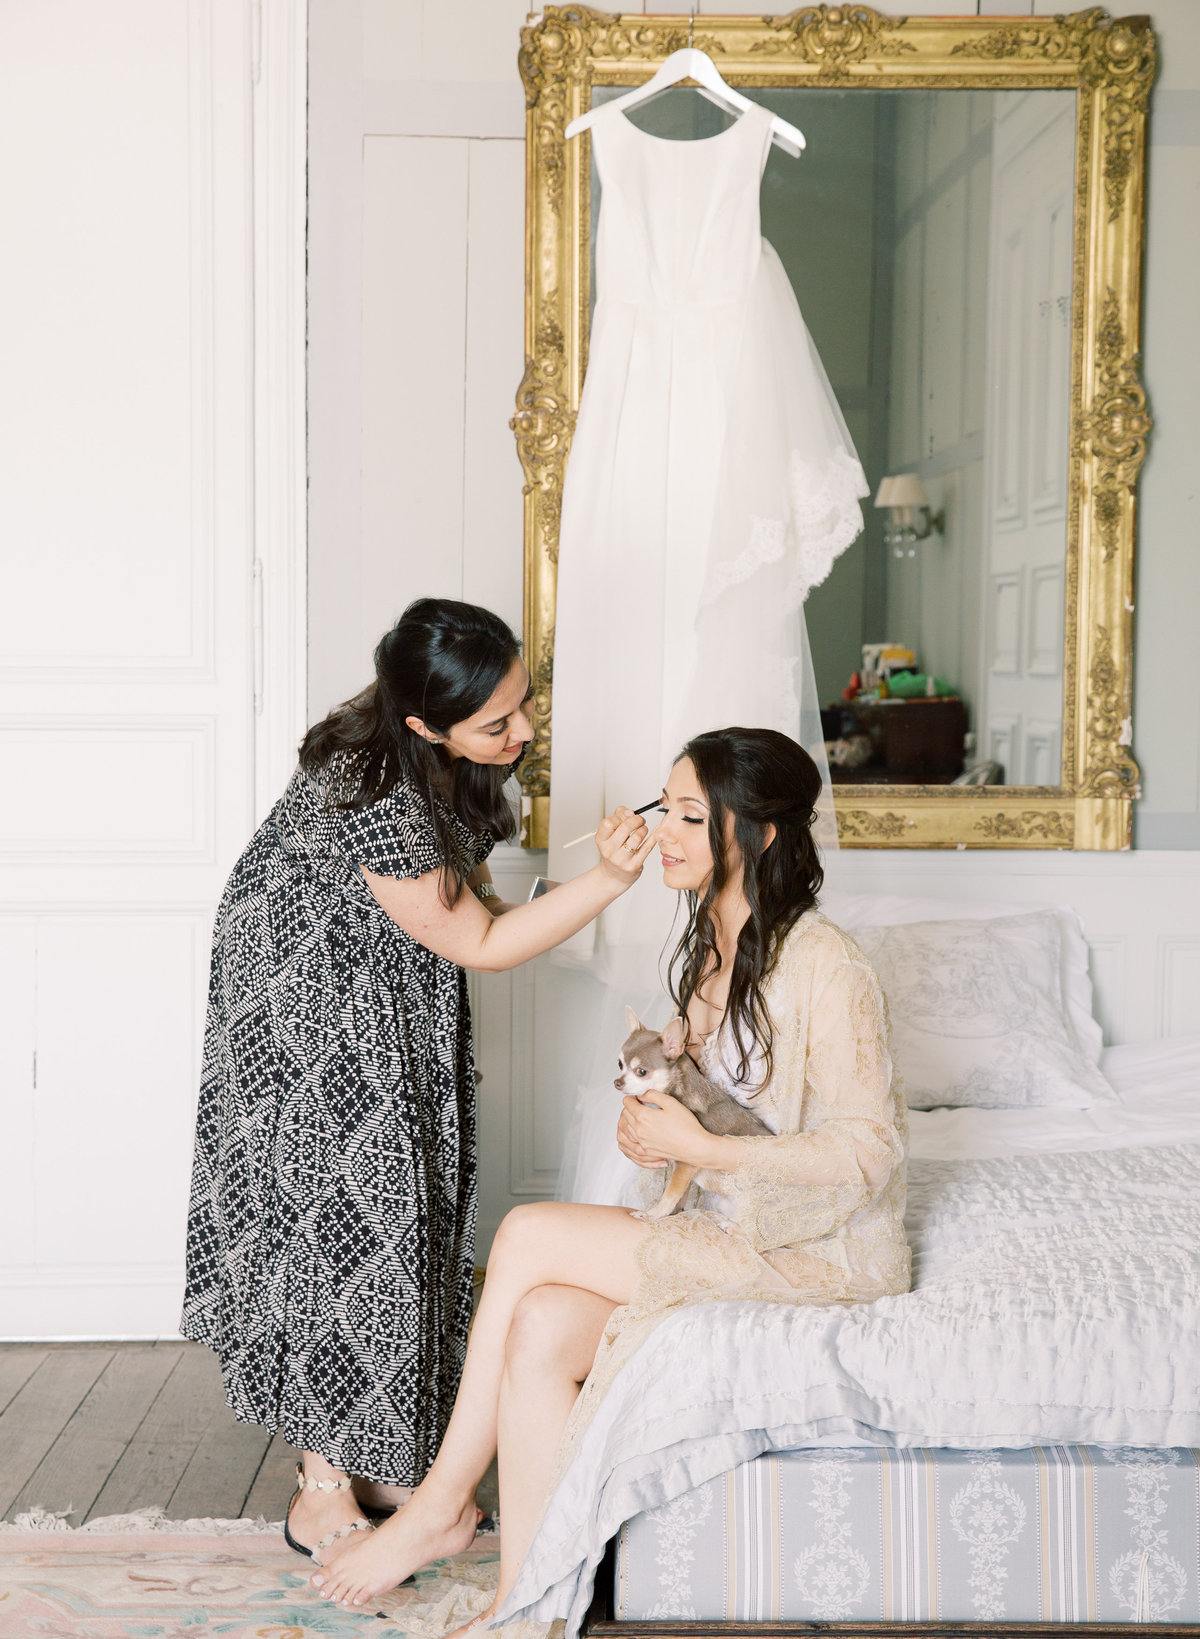 Intimate french champagne chateau wedding amelia soegijono0023